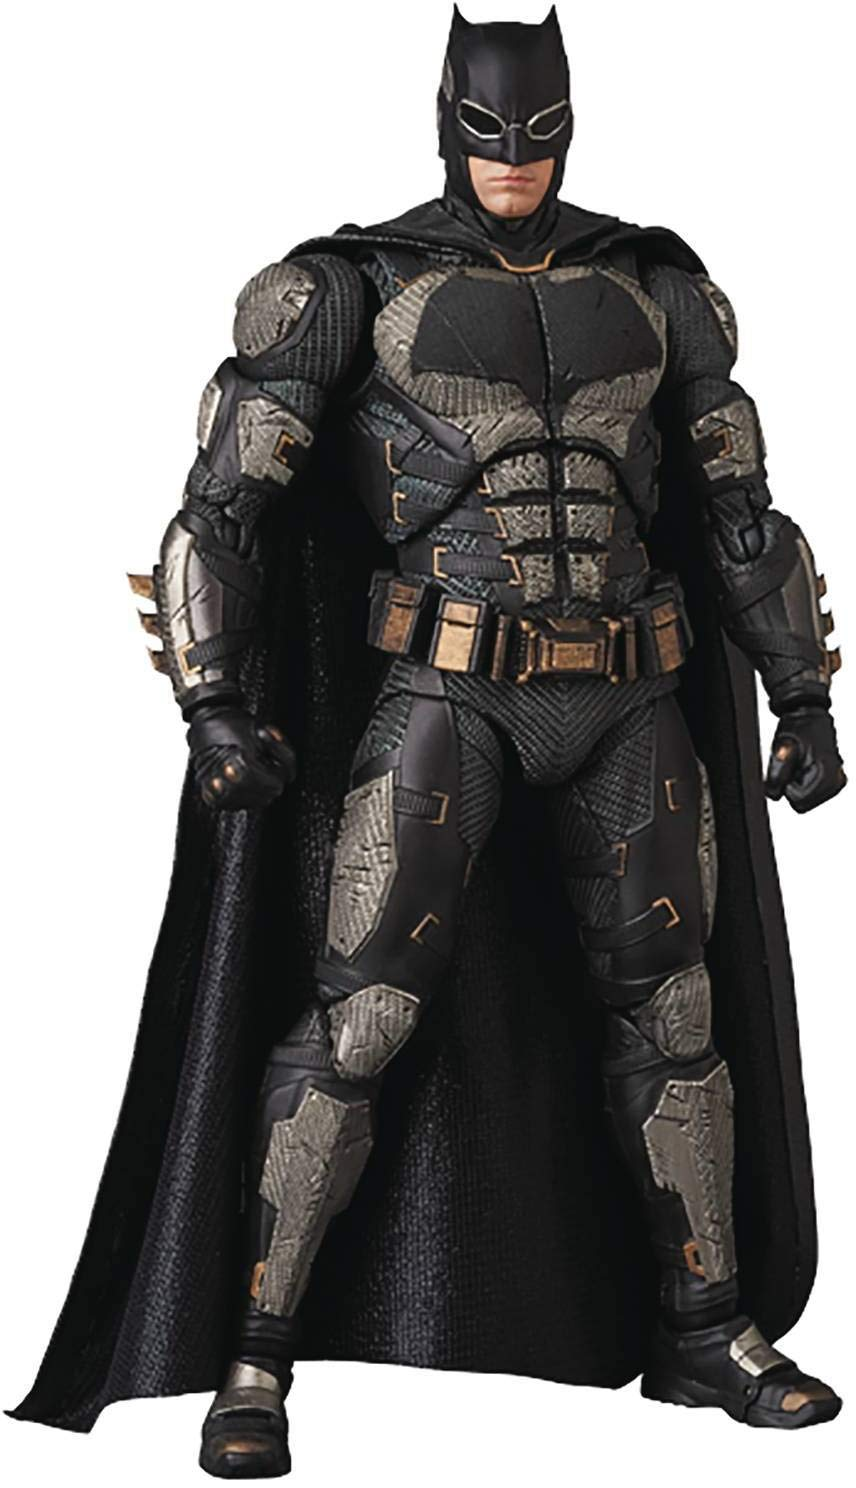 Medicom Justice League: Batman (Tactical Suit Version) Maf Ex Figure